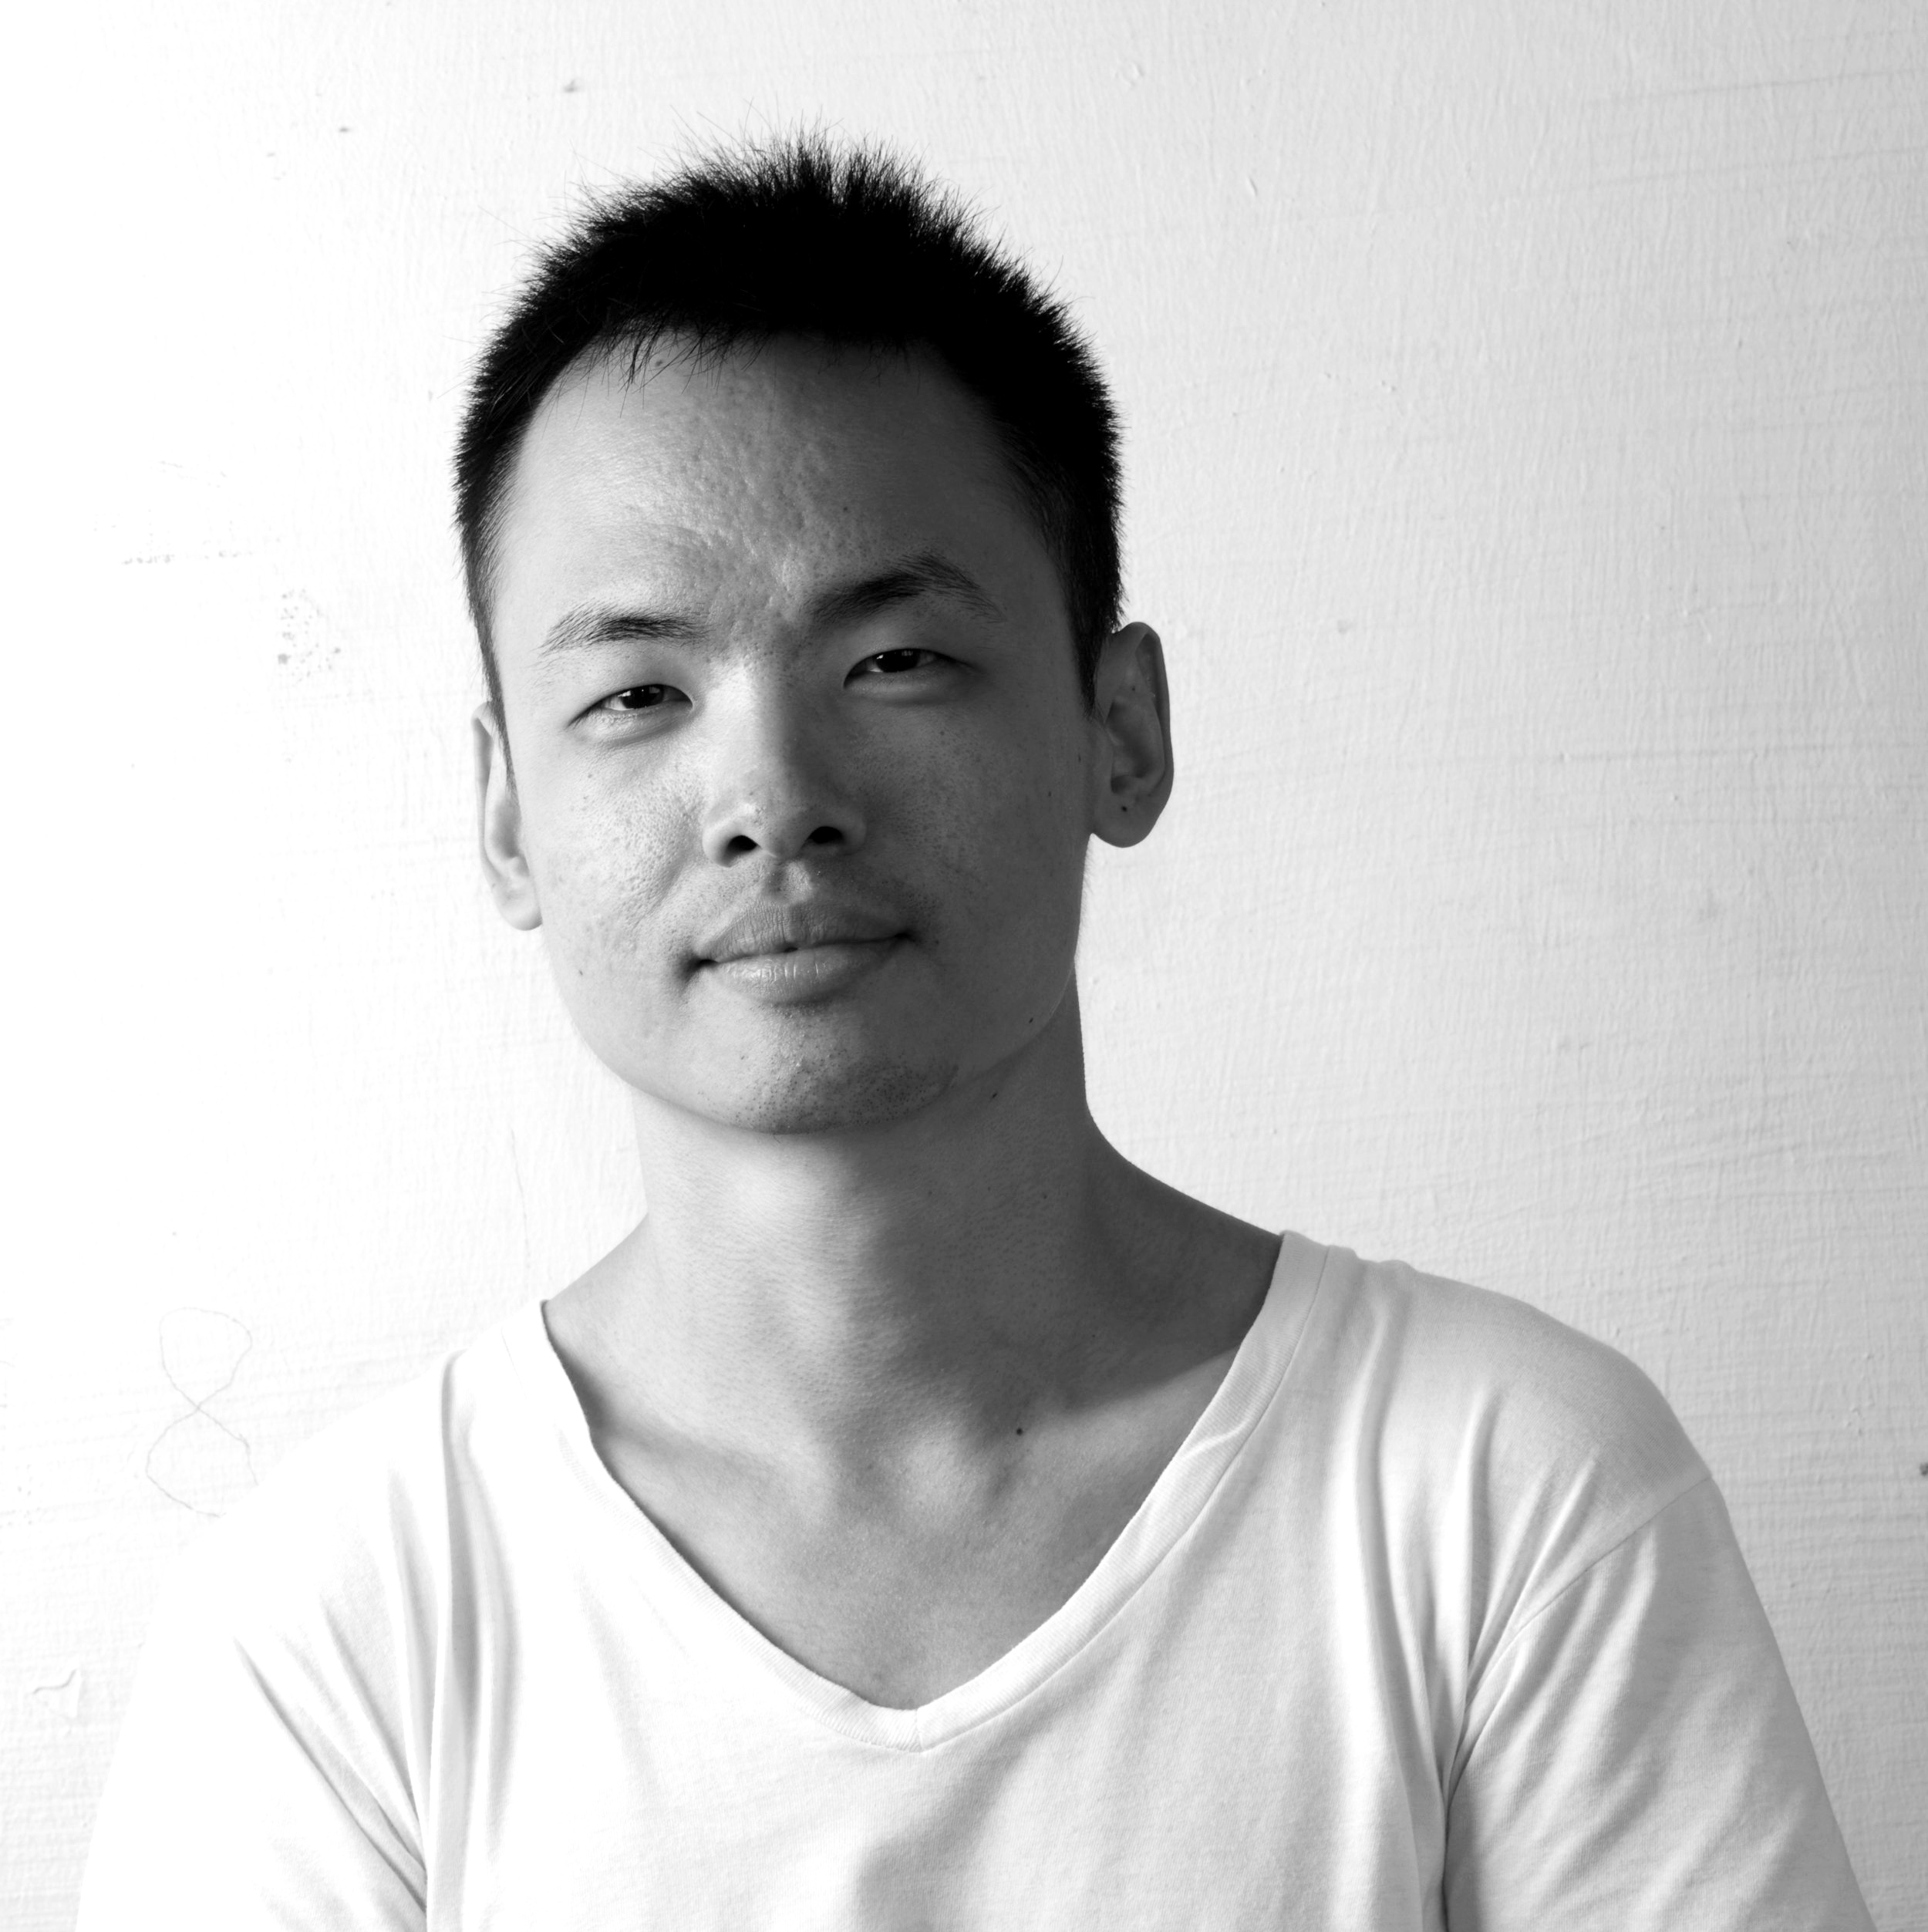 cyril wong - Cyril Wong is the Singapore Literature Prize-winning author of poetry collections such as Unmarked Treasure, Tilting Our Plates to Catch the Light and Satori Blues, as well as short stories. His novel, The Last Lesson of Mrs De Souza received great acclaim. He has served as a mentor under the Creative Arts Programme and the Mentor Access Project, as well as a judge for the Golden Point Awards in Singapore. A past recipient of the National Arts Council's Young Artist Award for Literature, he completed his doctoral degree in English Literature at the National University of Singapore in 2012.